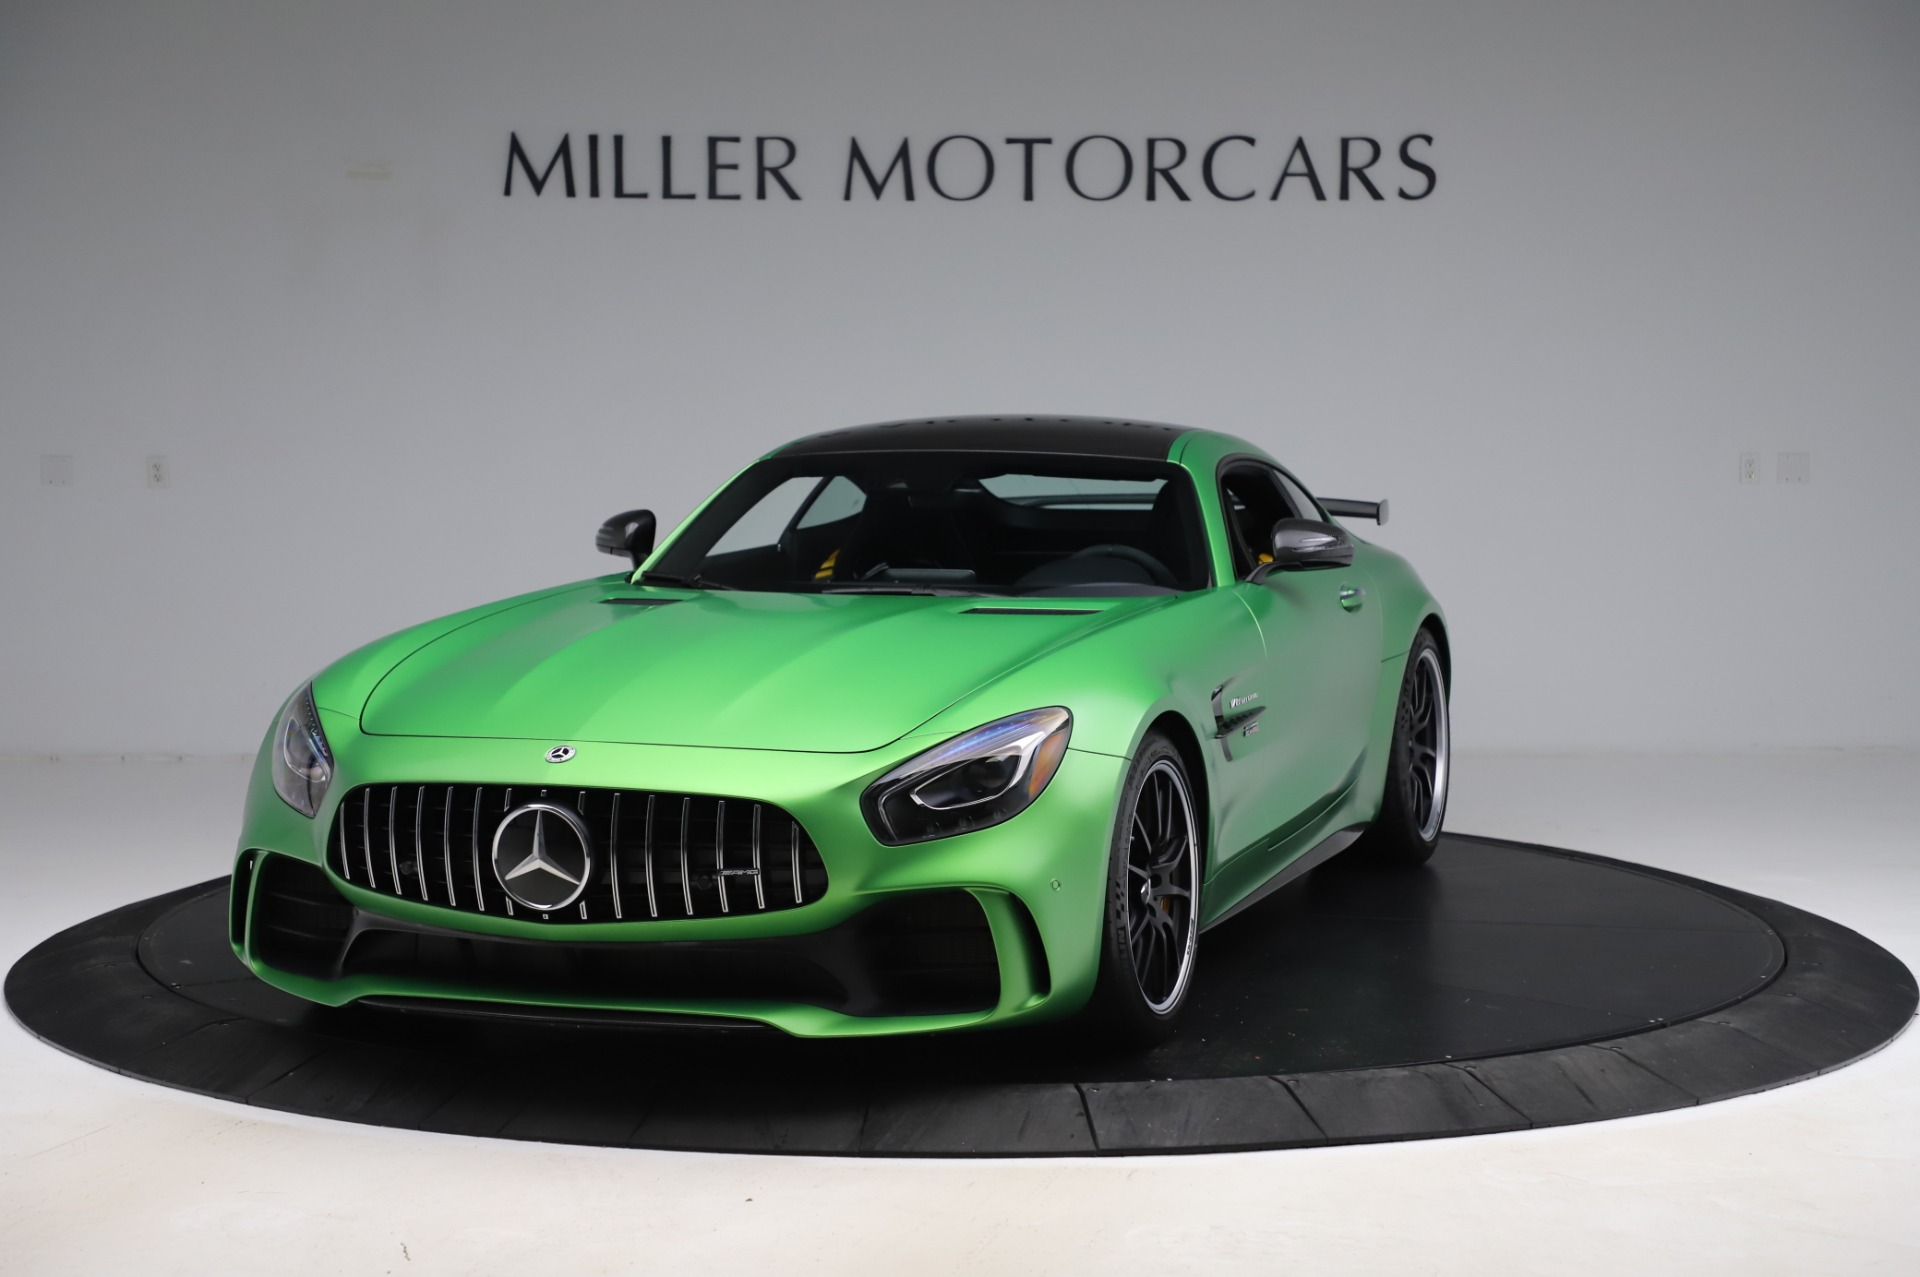 Used 2019 Mercedes-Benz AMG GT R for sale $155,900 at Pagani of Greenwich in Greenwich CT 06830 1